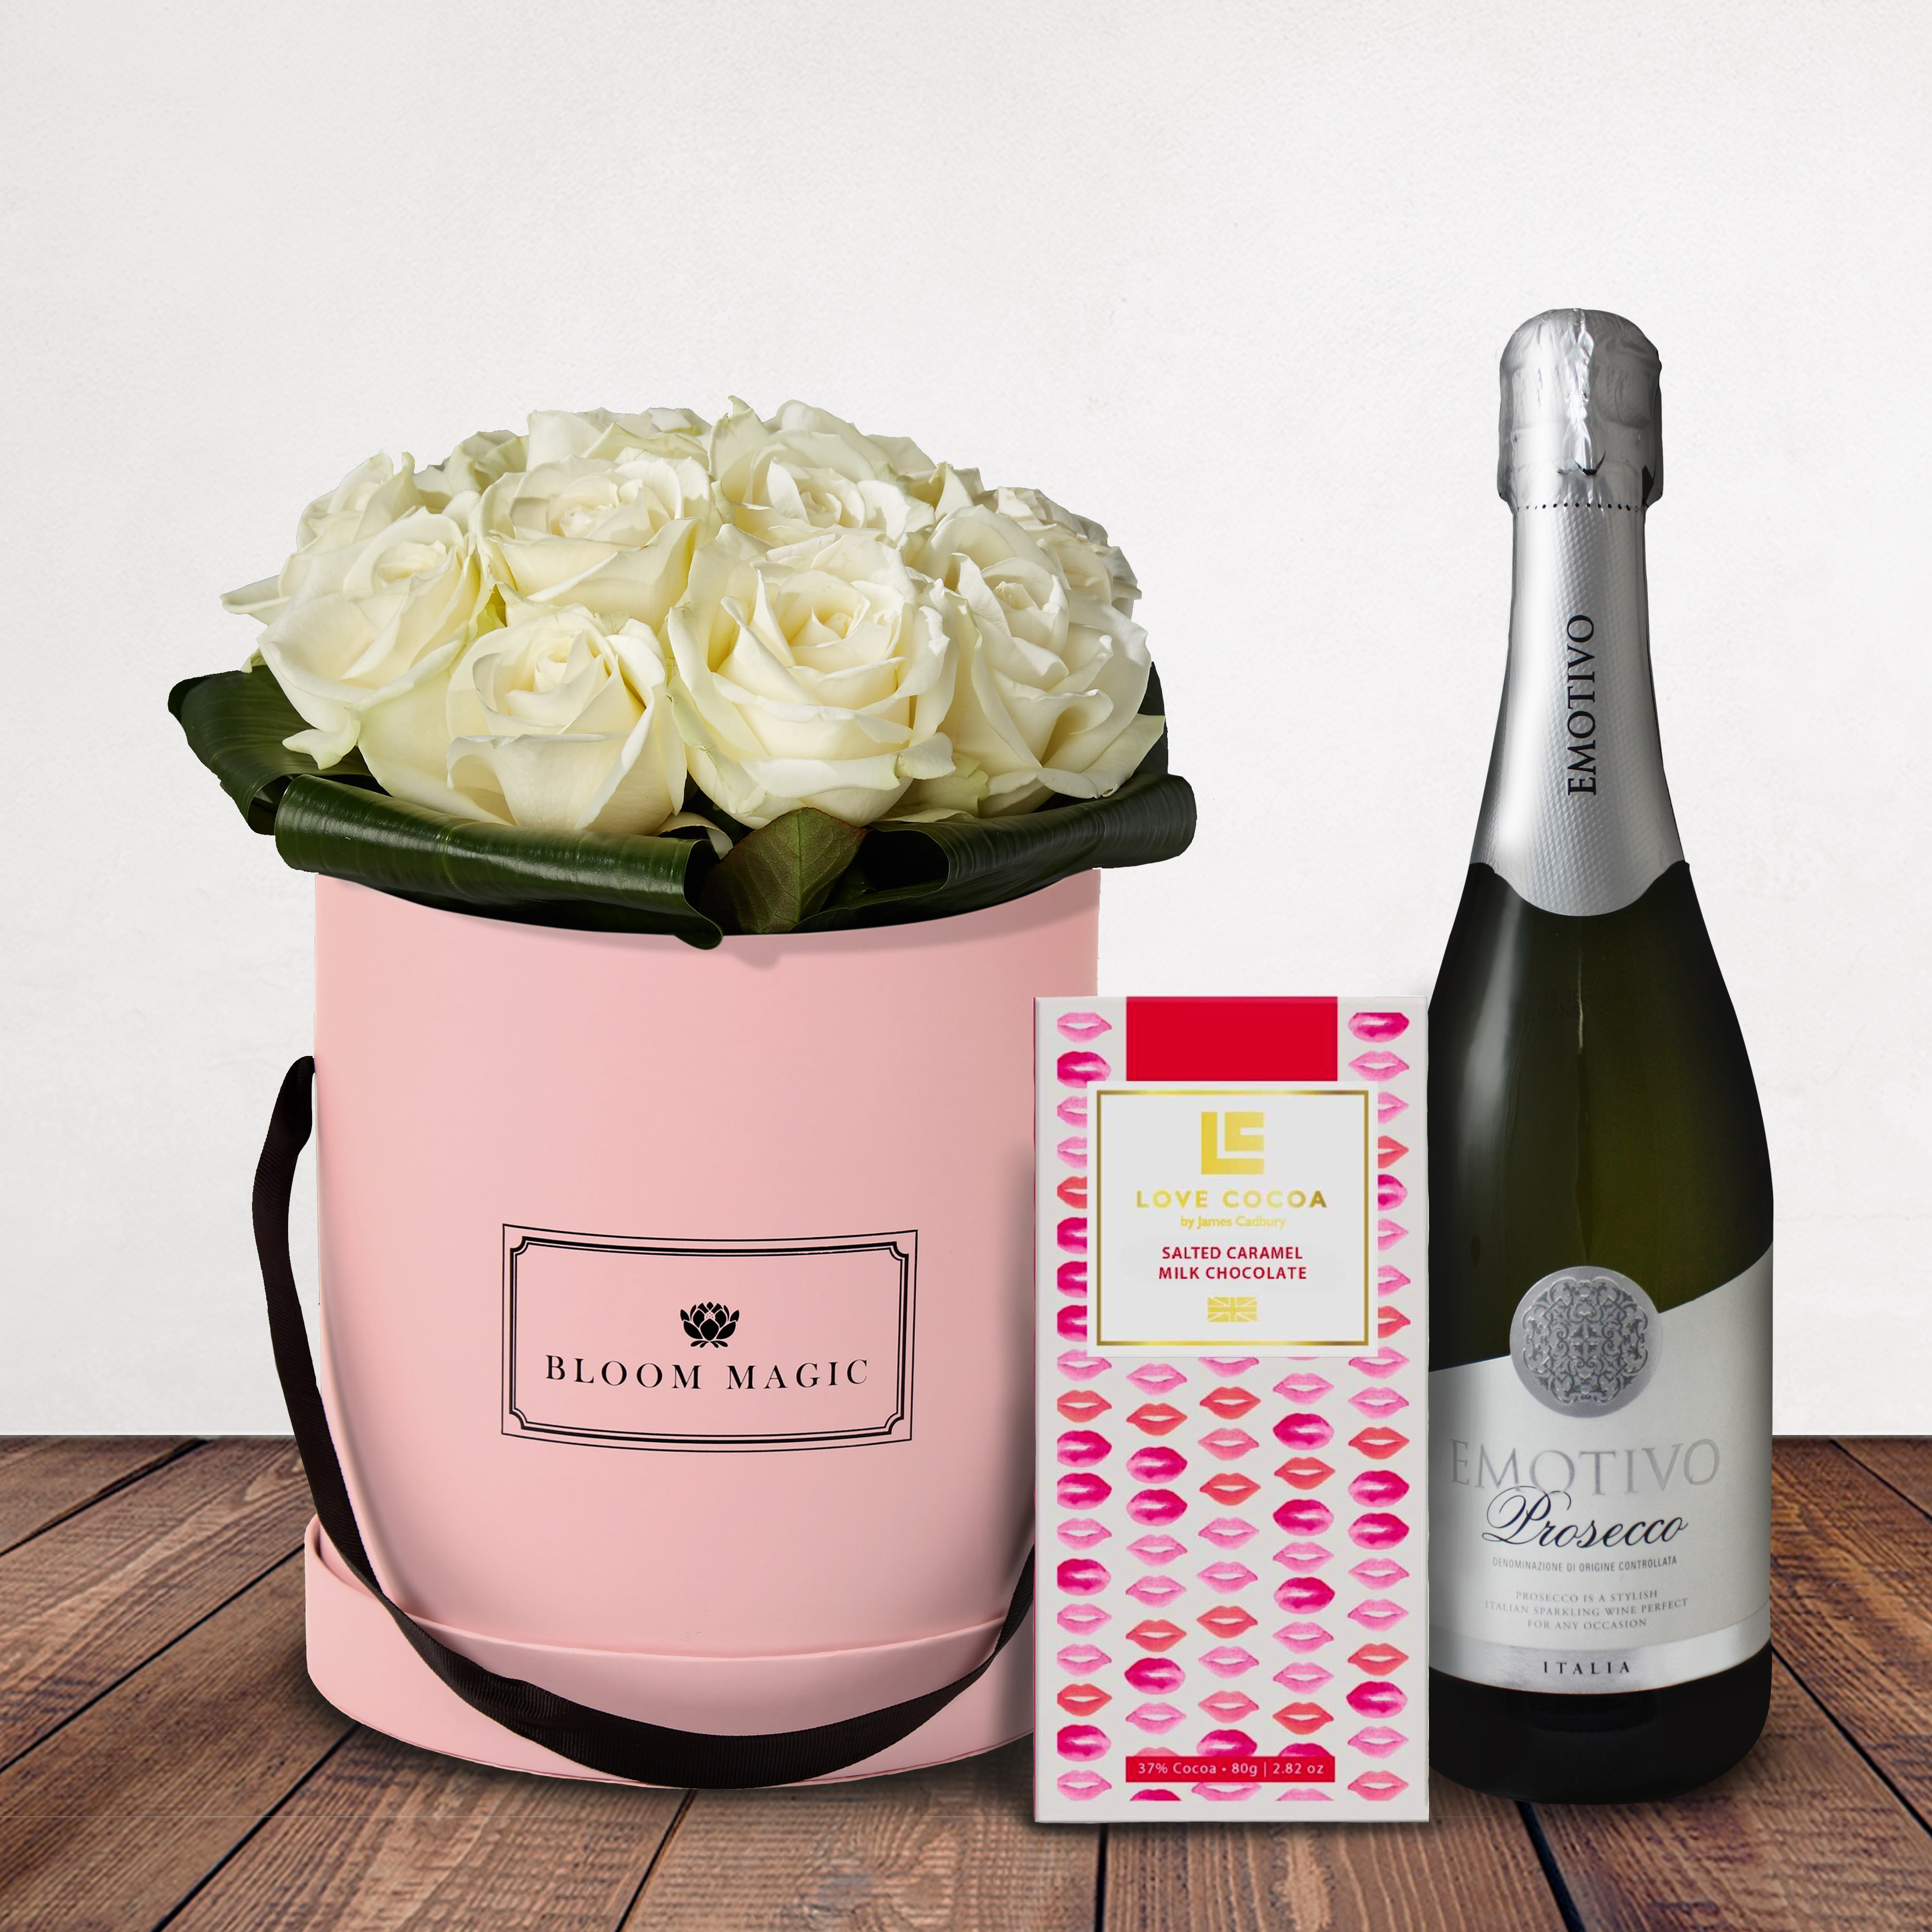 Une Nuit À Montmartre Gift Set Flowers Delivered - Une Nuit À Montmartre is a beautiful selection of top quality white avalanche roses that comes in a blush pink, charcoal grey or powder blue hat box. This is a beautiful and classy flower arrangement would make a perfect gift for any loved one. It's can be romantic or just classically elegant, so whatever the occasion this is the perfect bouquet to put a smile on their face.